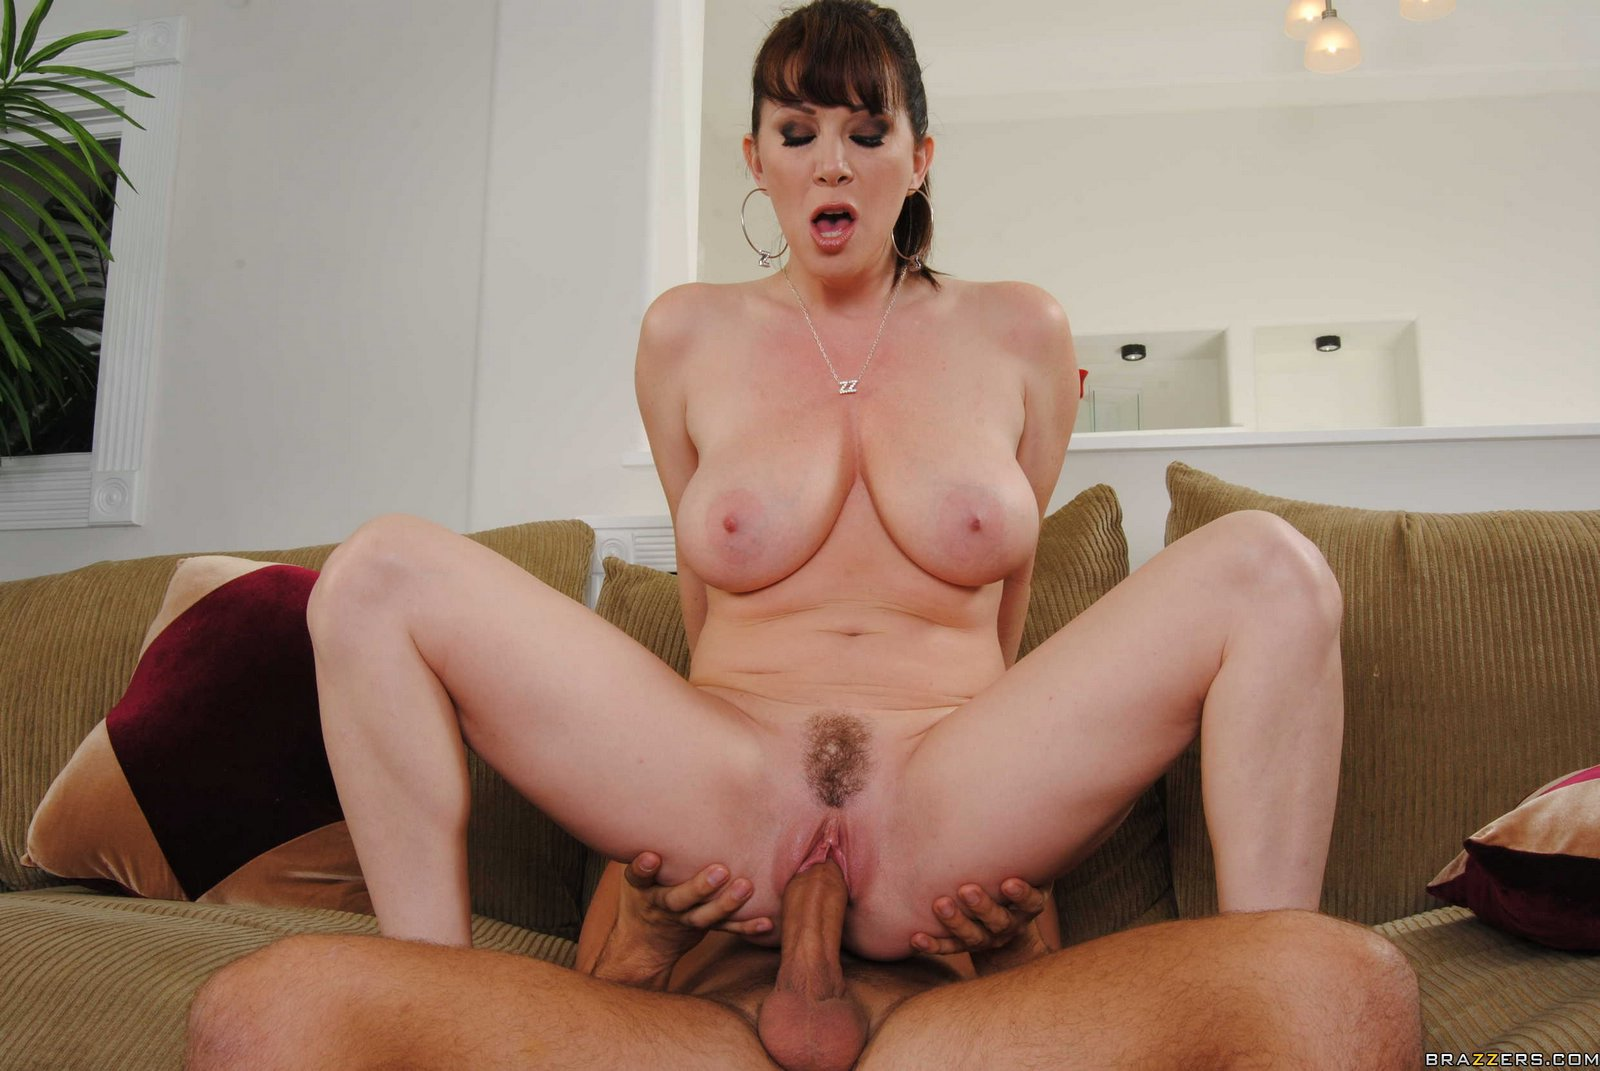 Big Boobs Star Rayveness Free Pics, Pictures And Biography